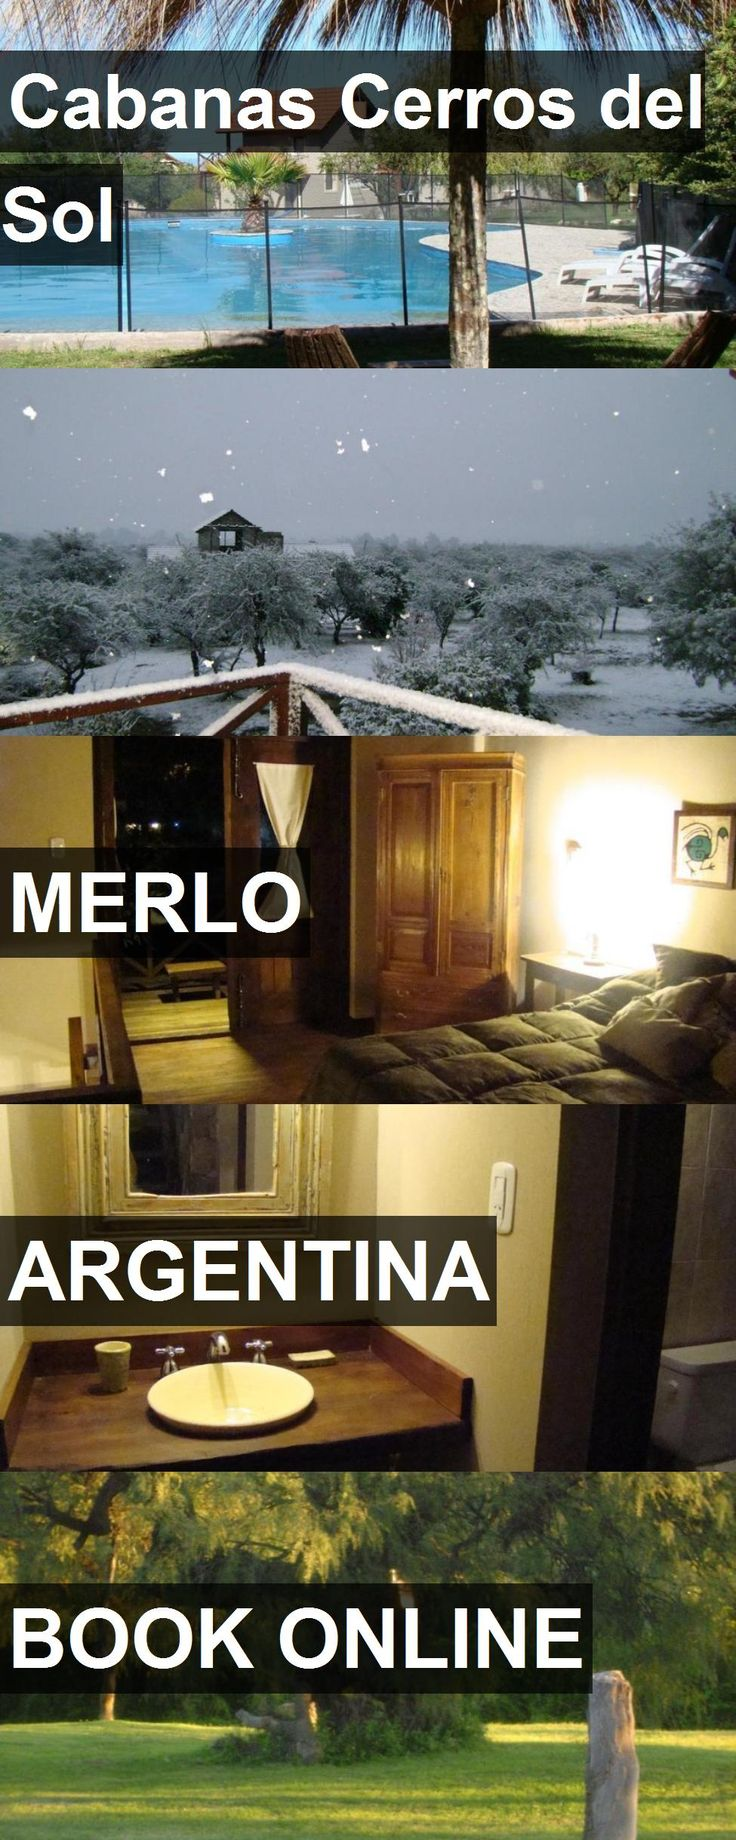 Hotel Cabanas Cerros del Sol in Merlo, Argentina. For more information, photos, reviews and best prices please follow the link. #Argentina #Merlo #travel #vacation #hotel